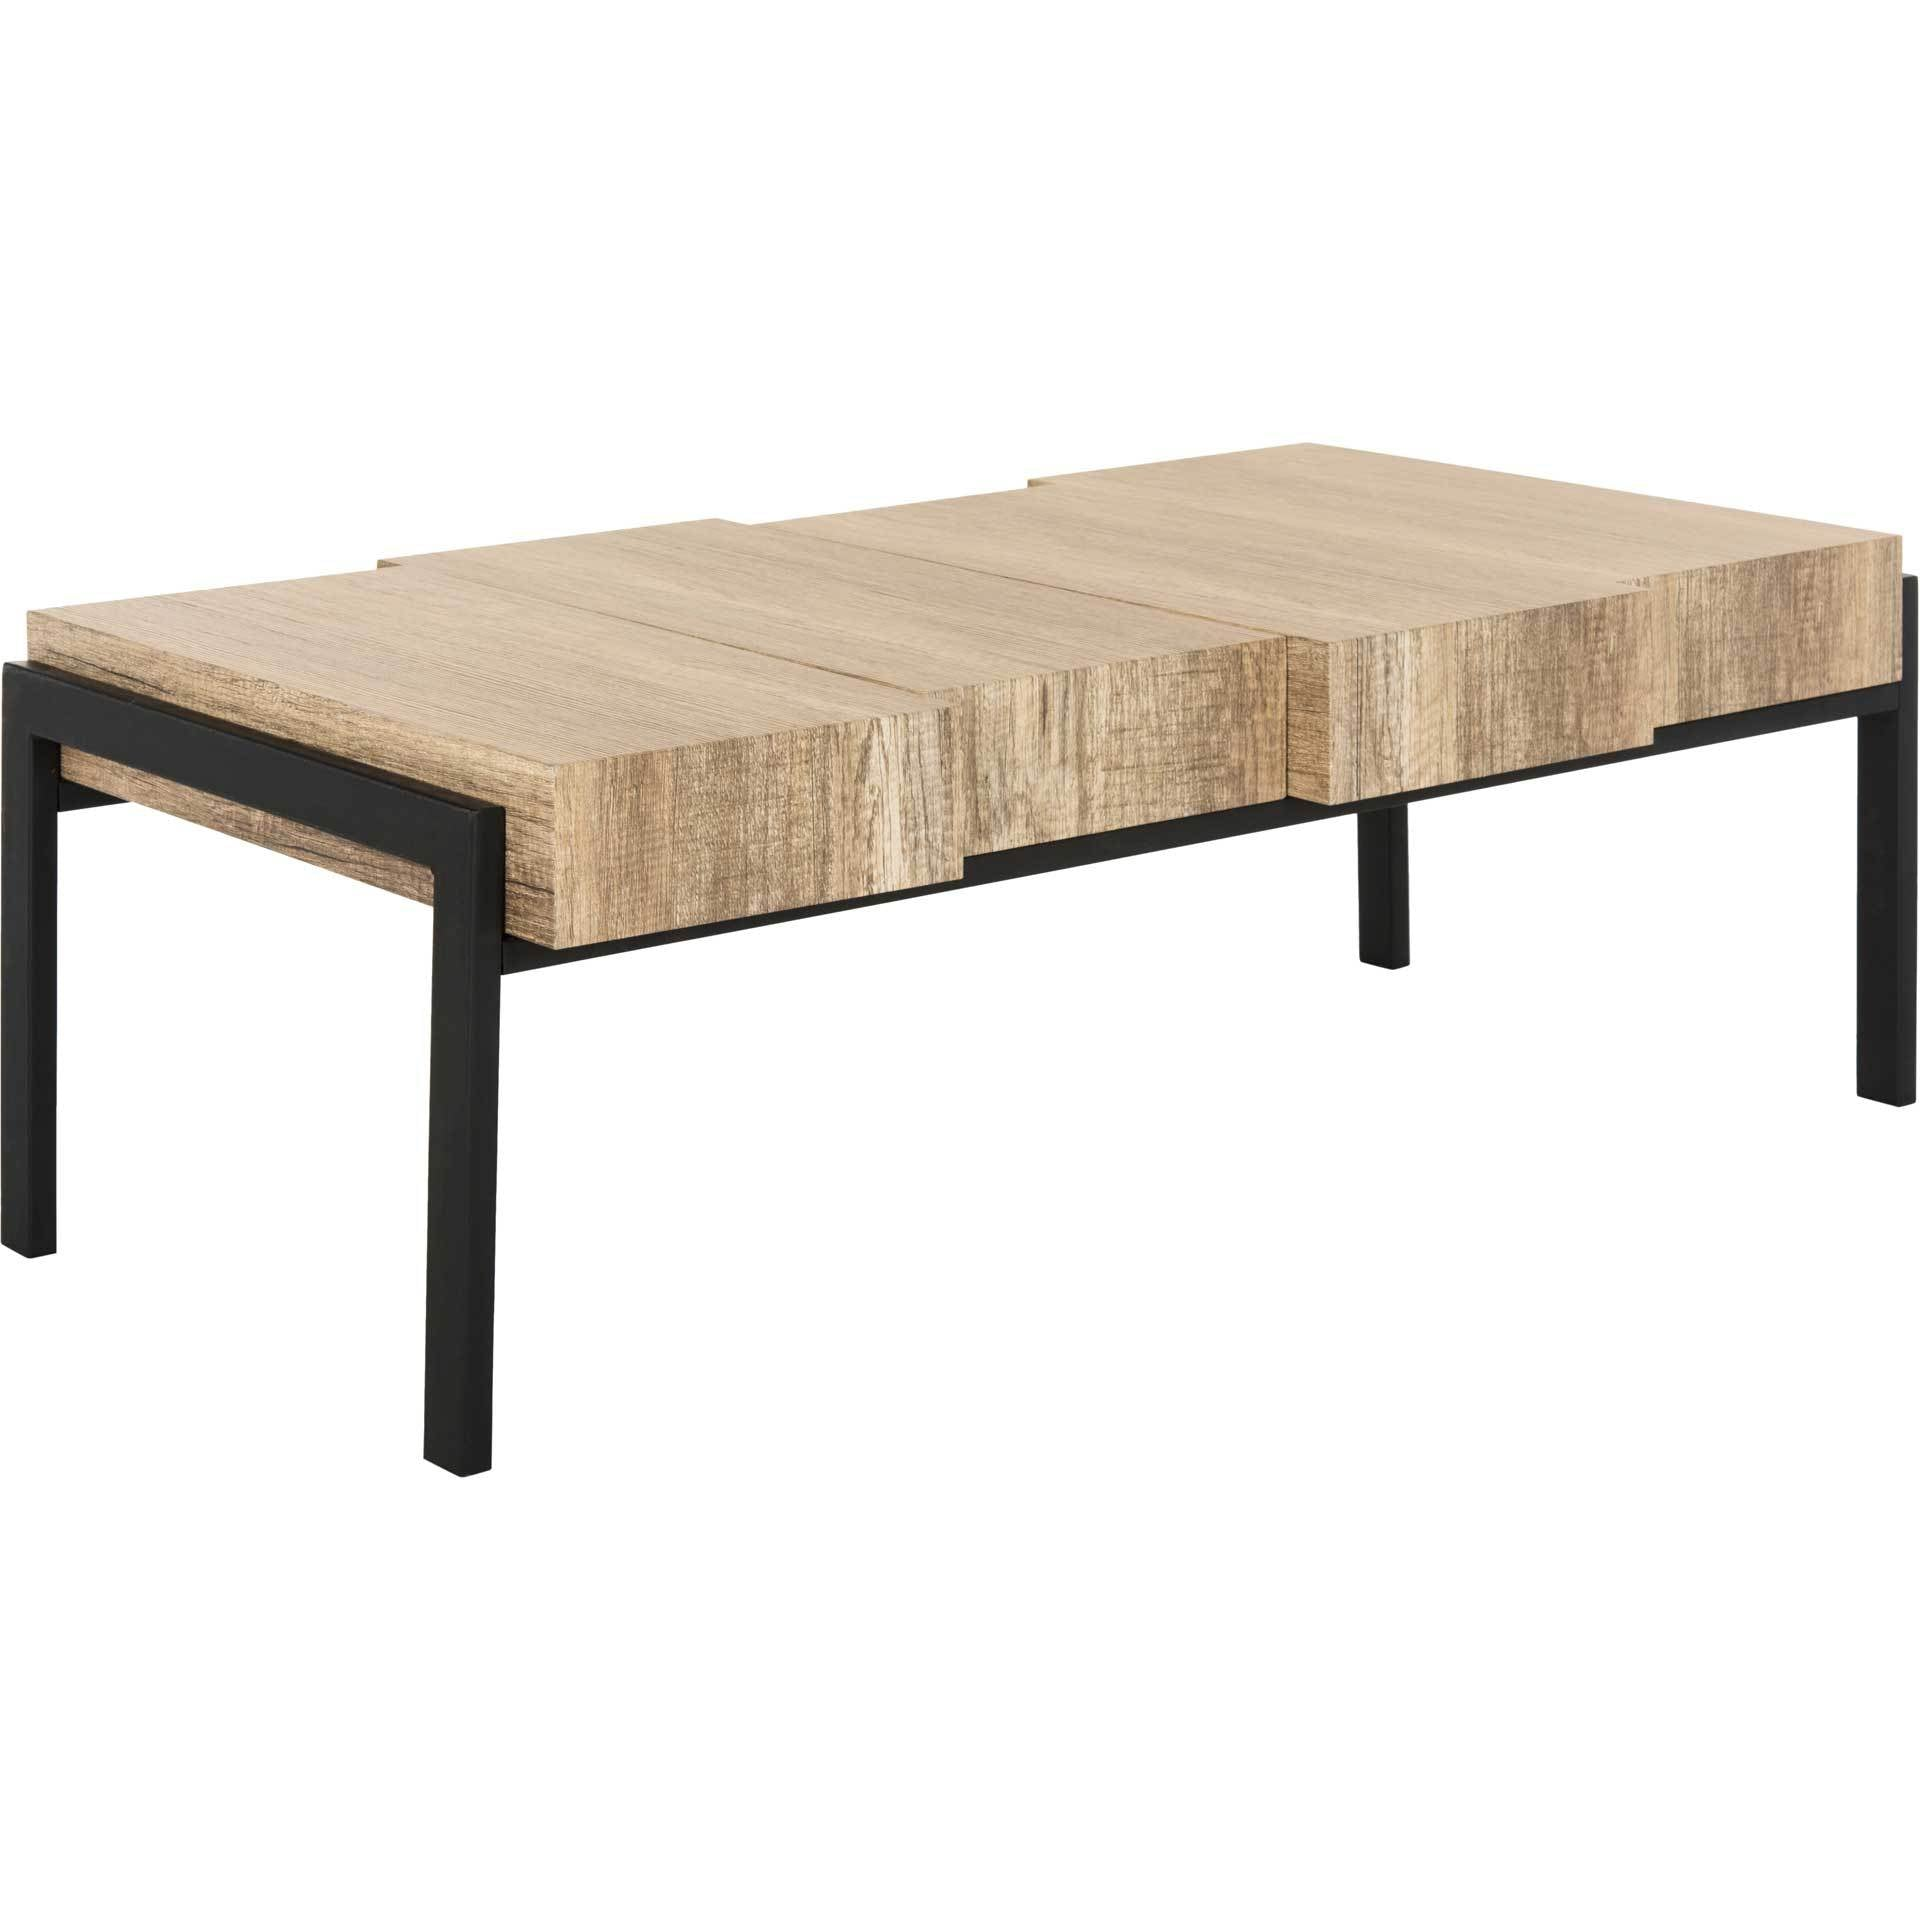 Alexa Contemporary Rustic Coffee Table